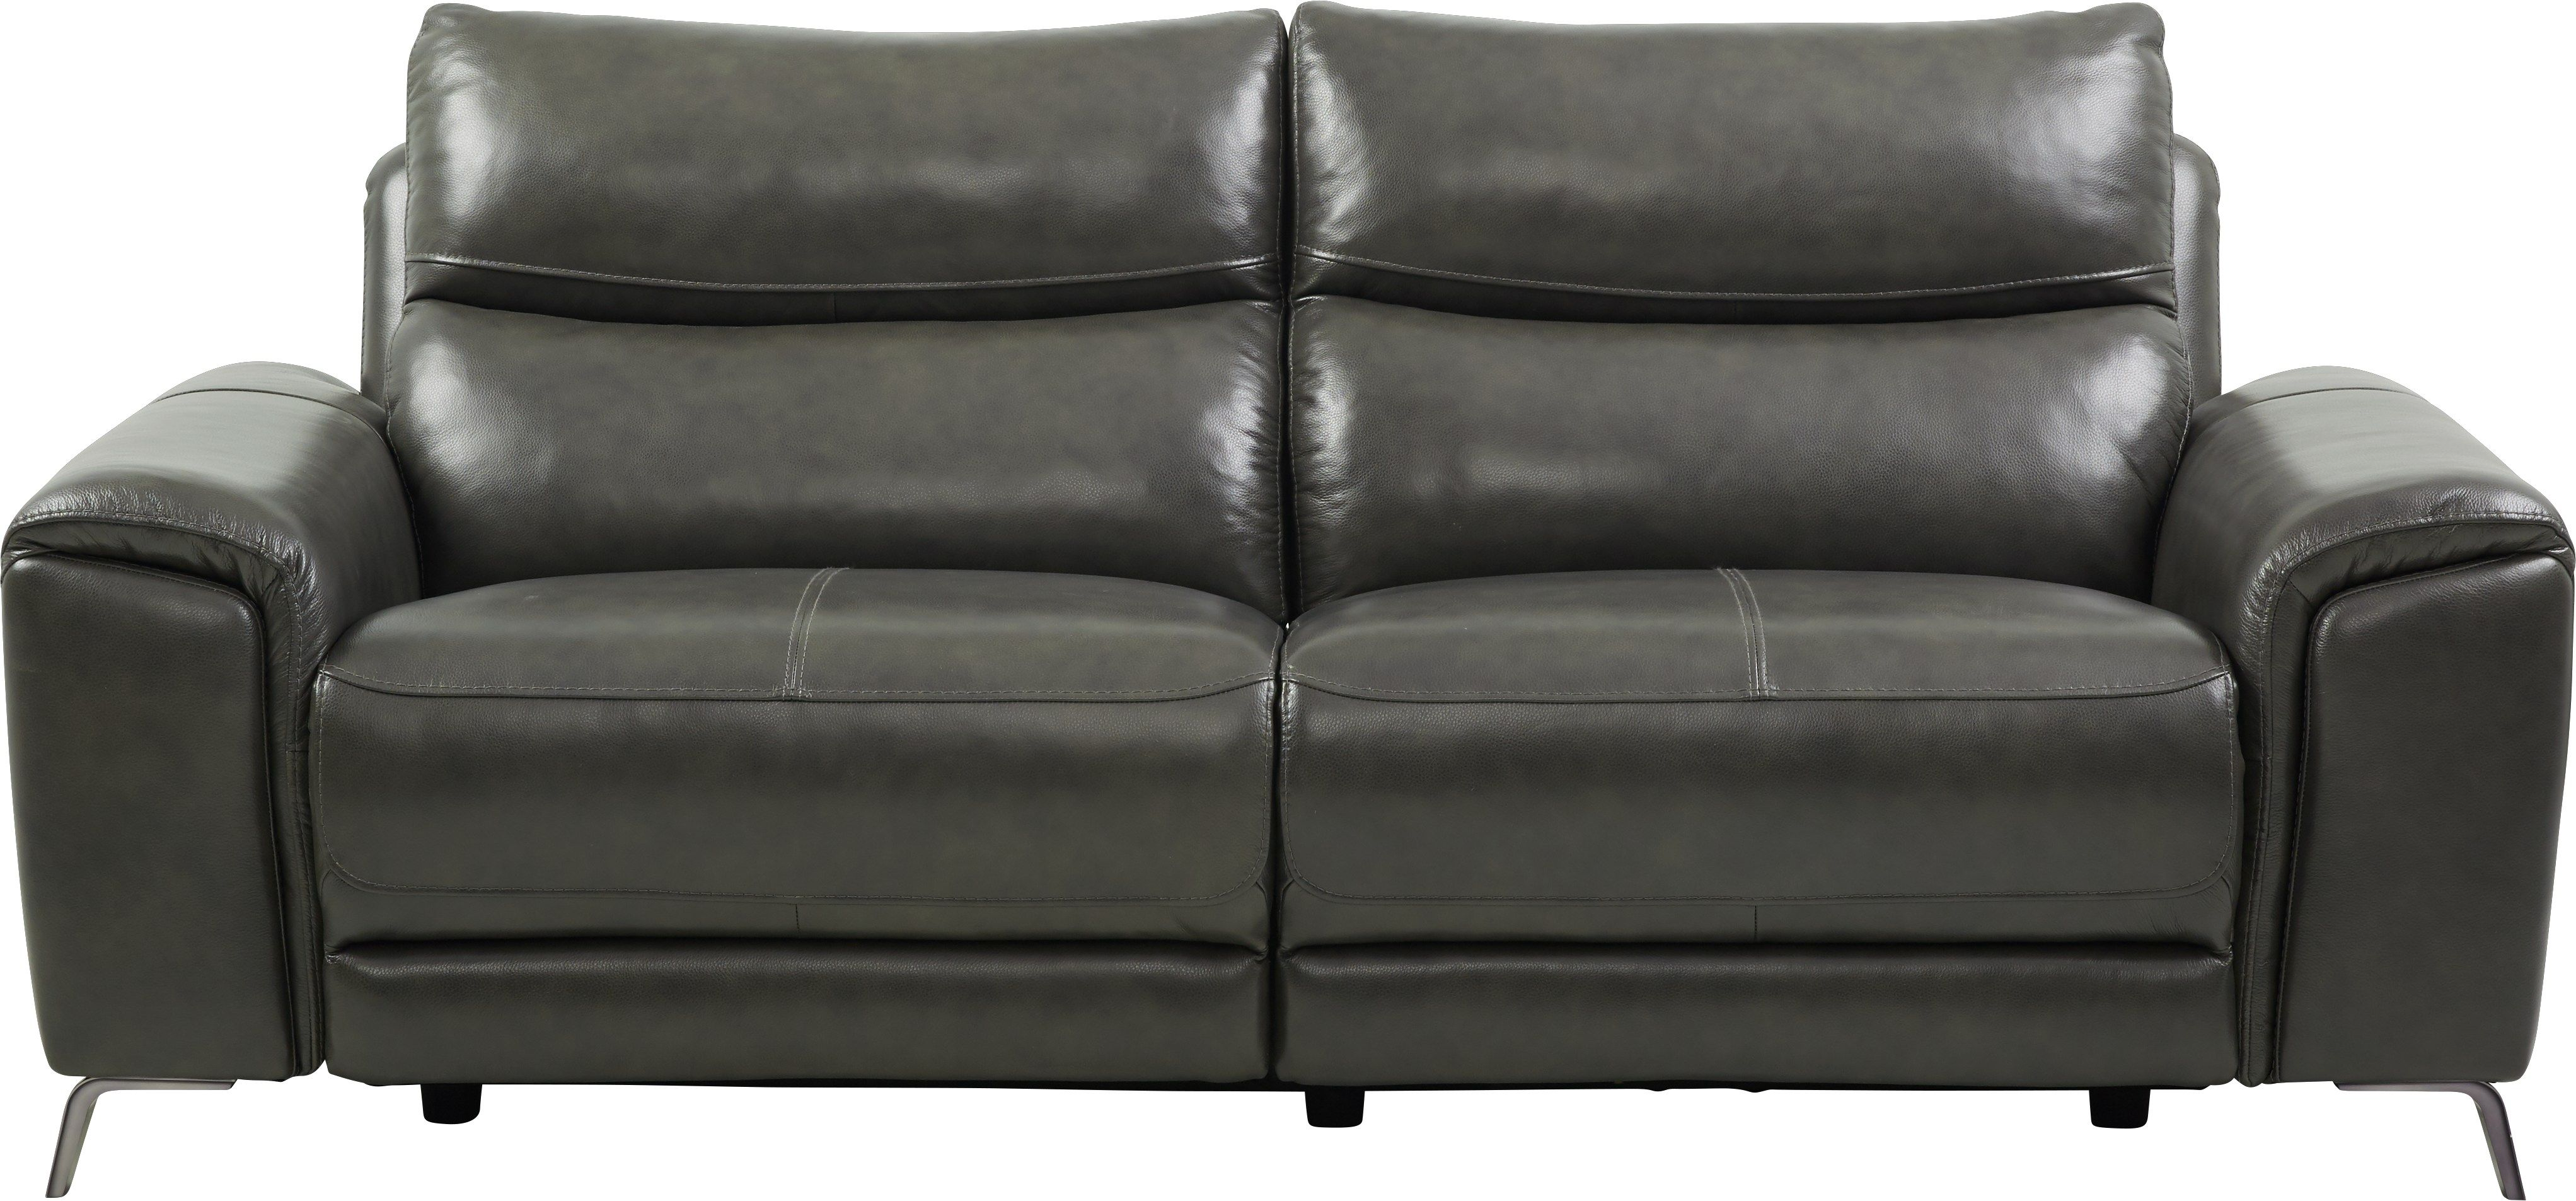 Rosato Gray Leather Power Reclining Sofa Power Reclining Sofa Leather Sofa Bed Grey Leather Reclining Sofa